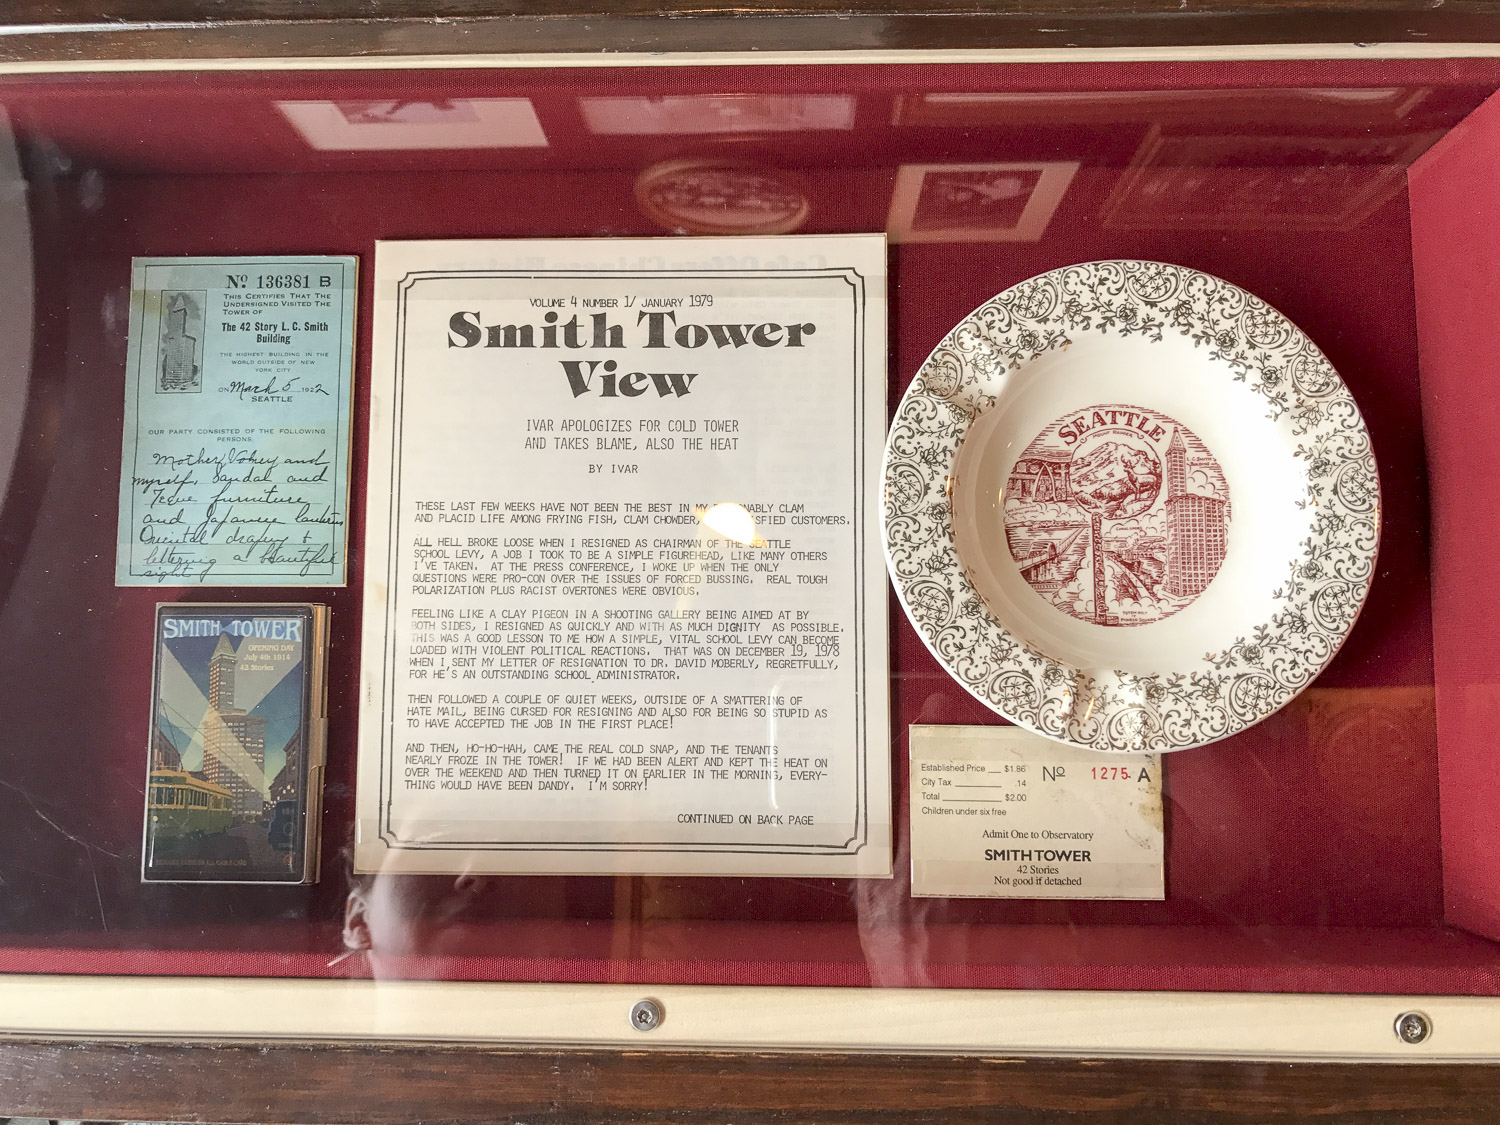 Smith Tower artifacts